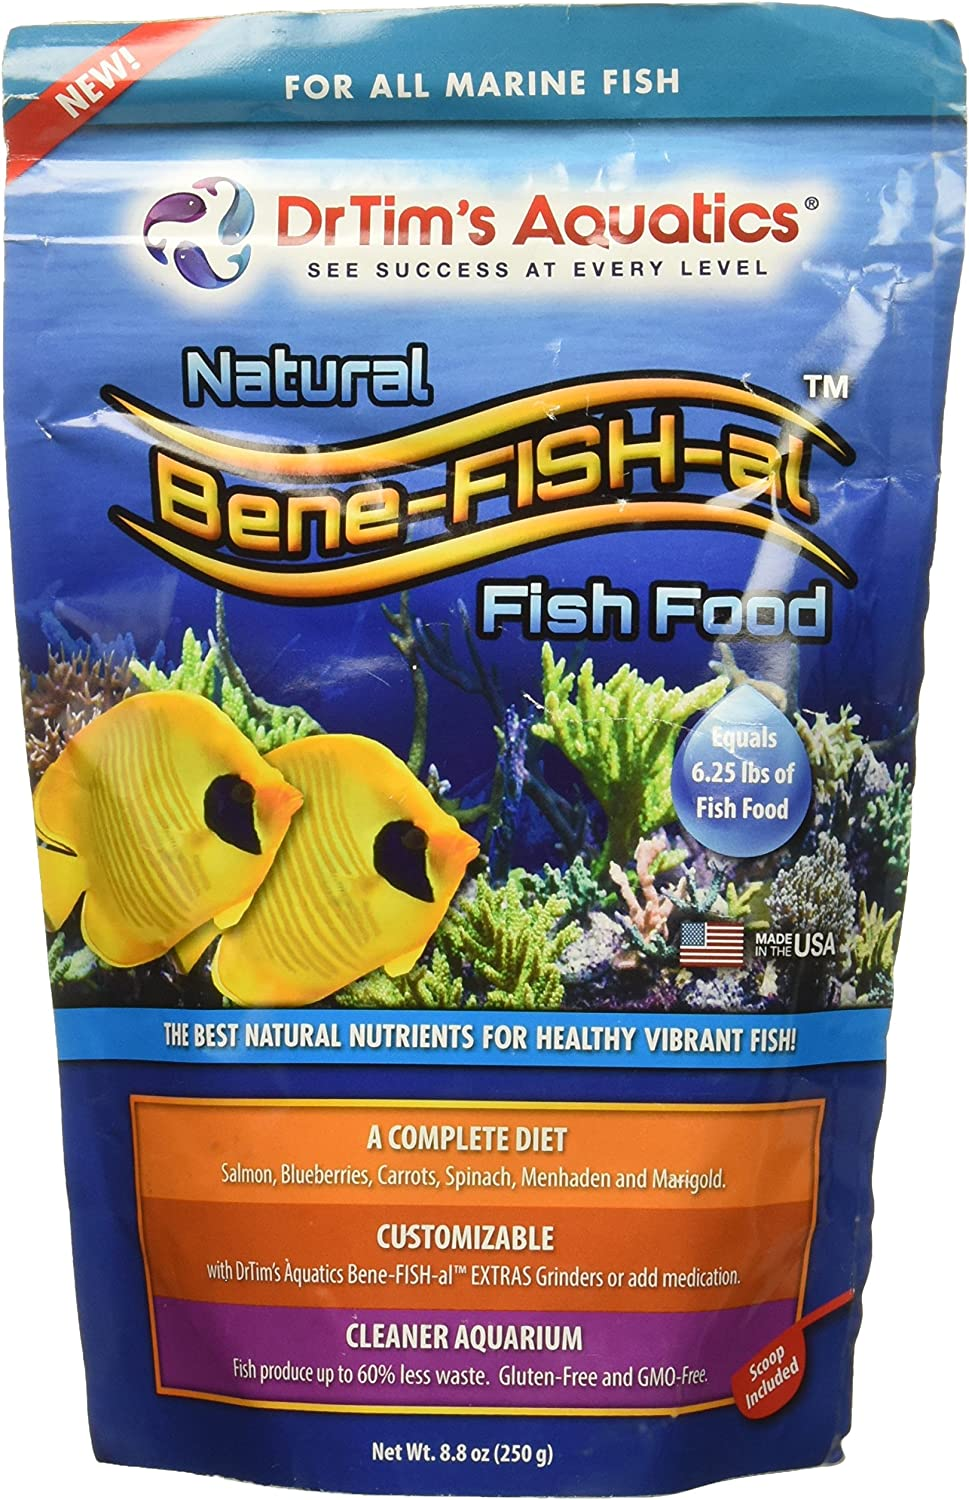 DrTim's Aquatics Marine Fish Food